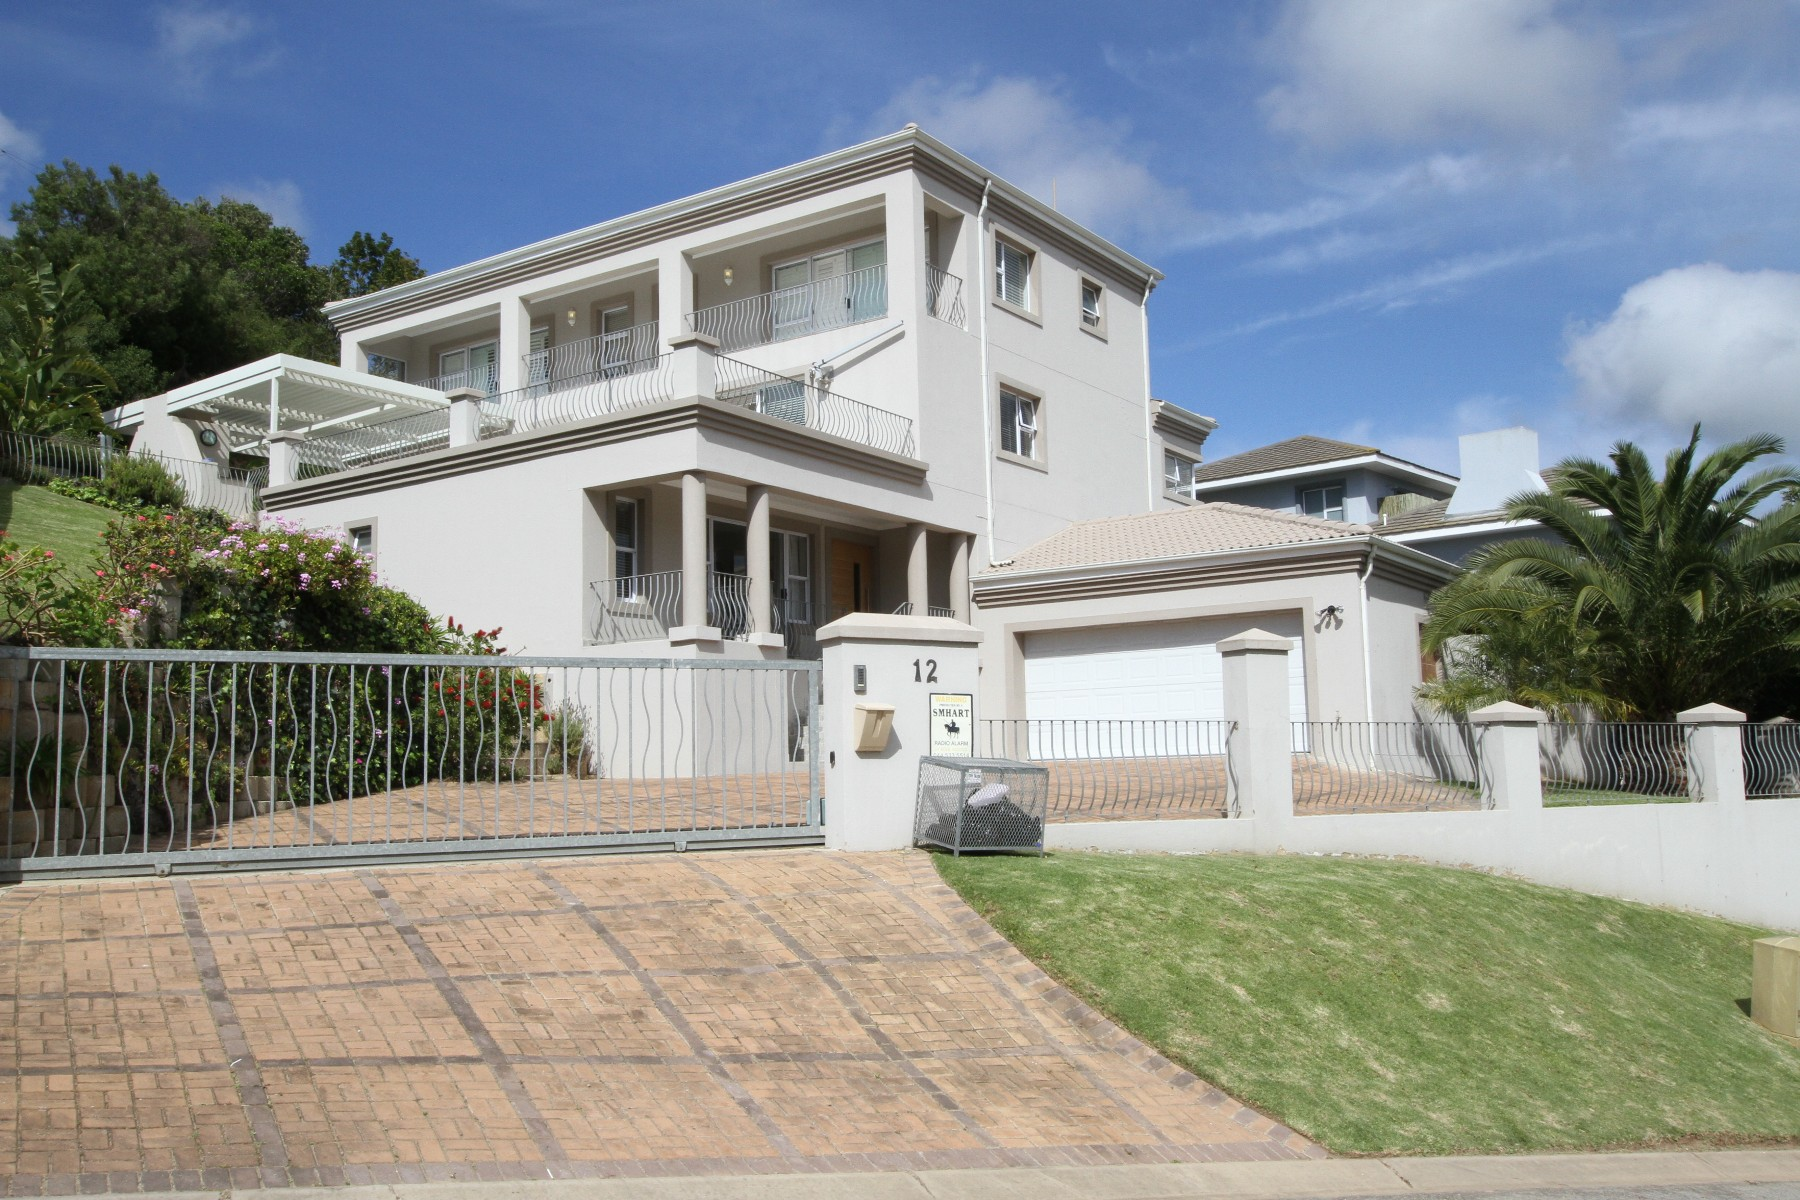 Single Family Home for Sale at Immaculate modern home Plettenberg Bay, Western Cape, 6600 South Africa